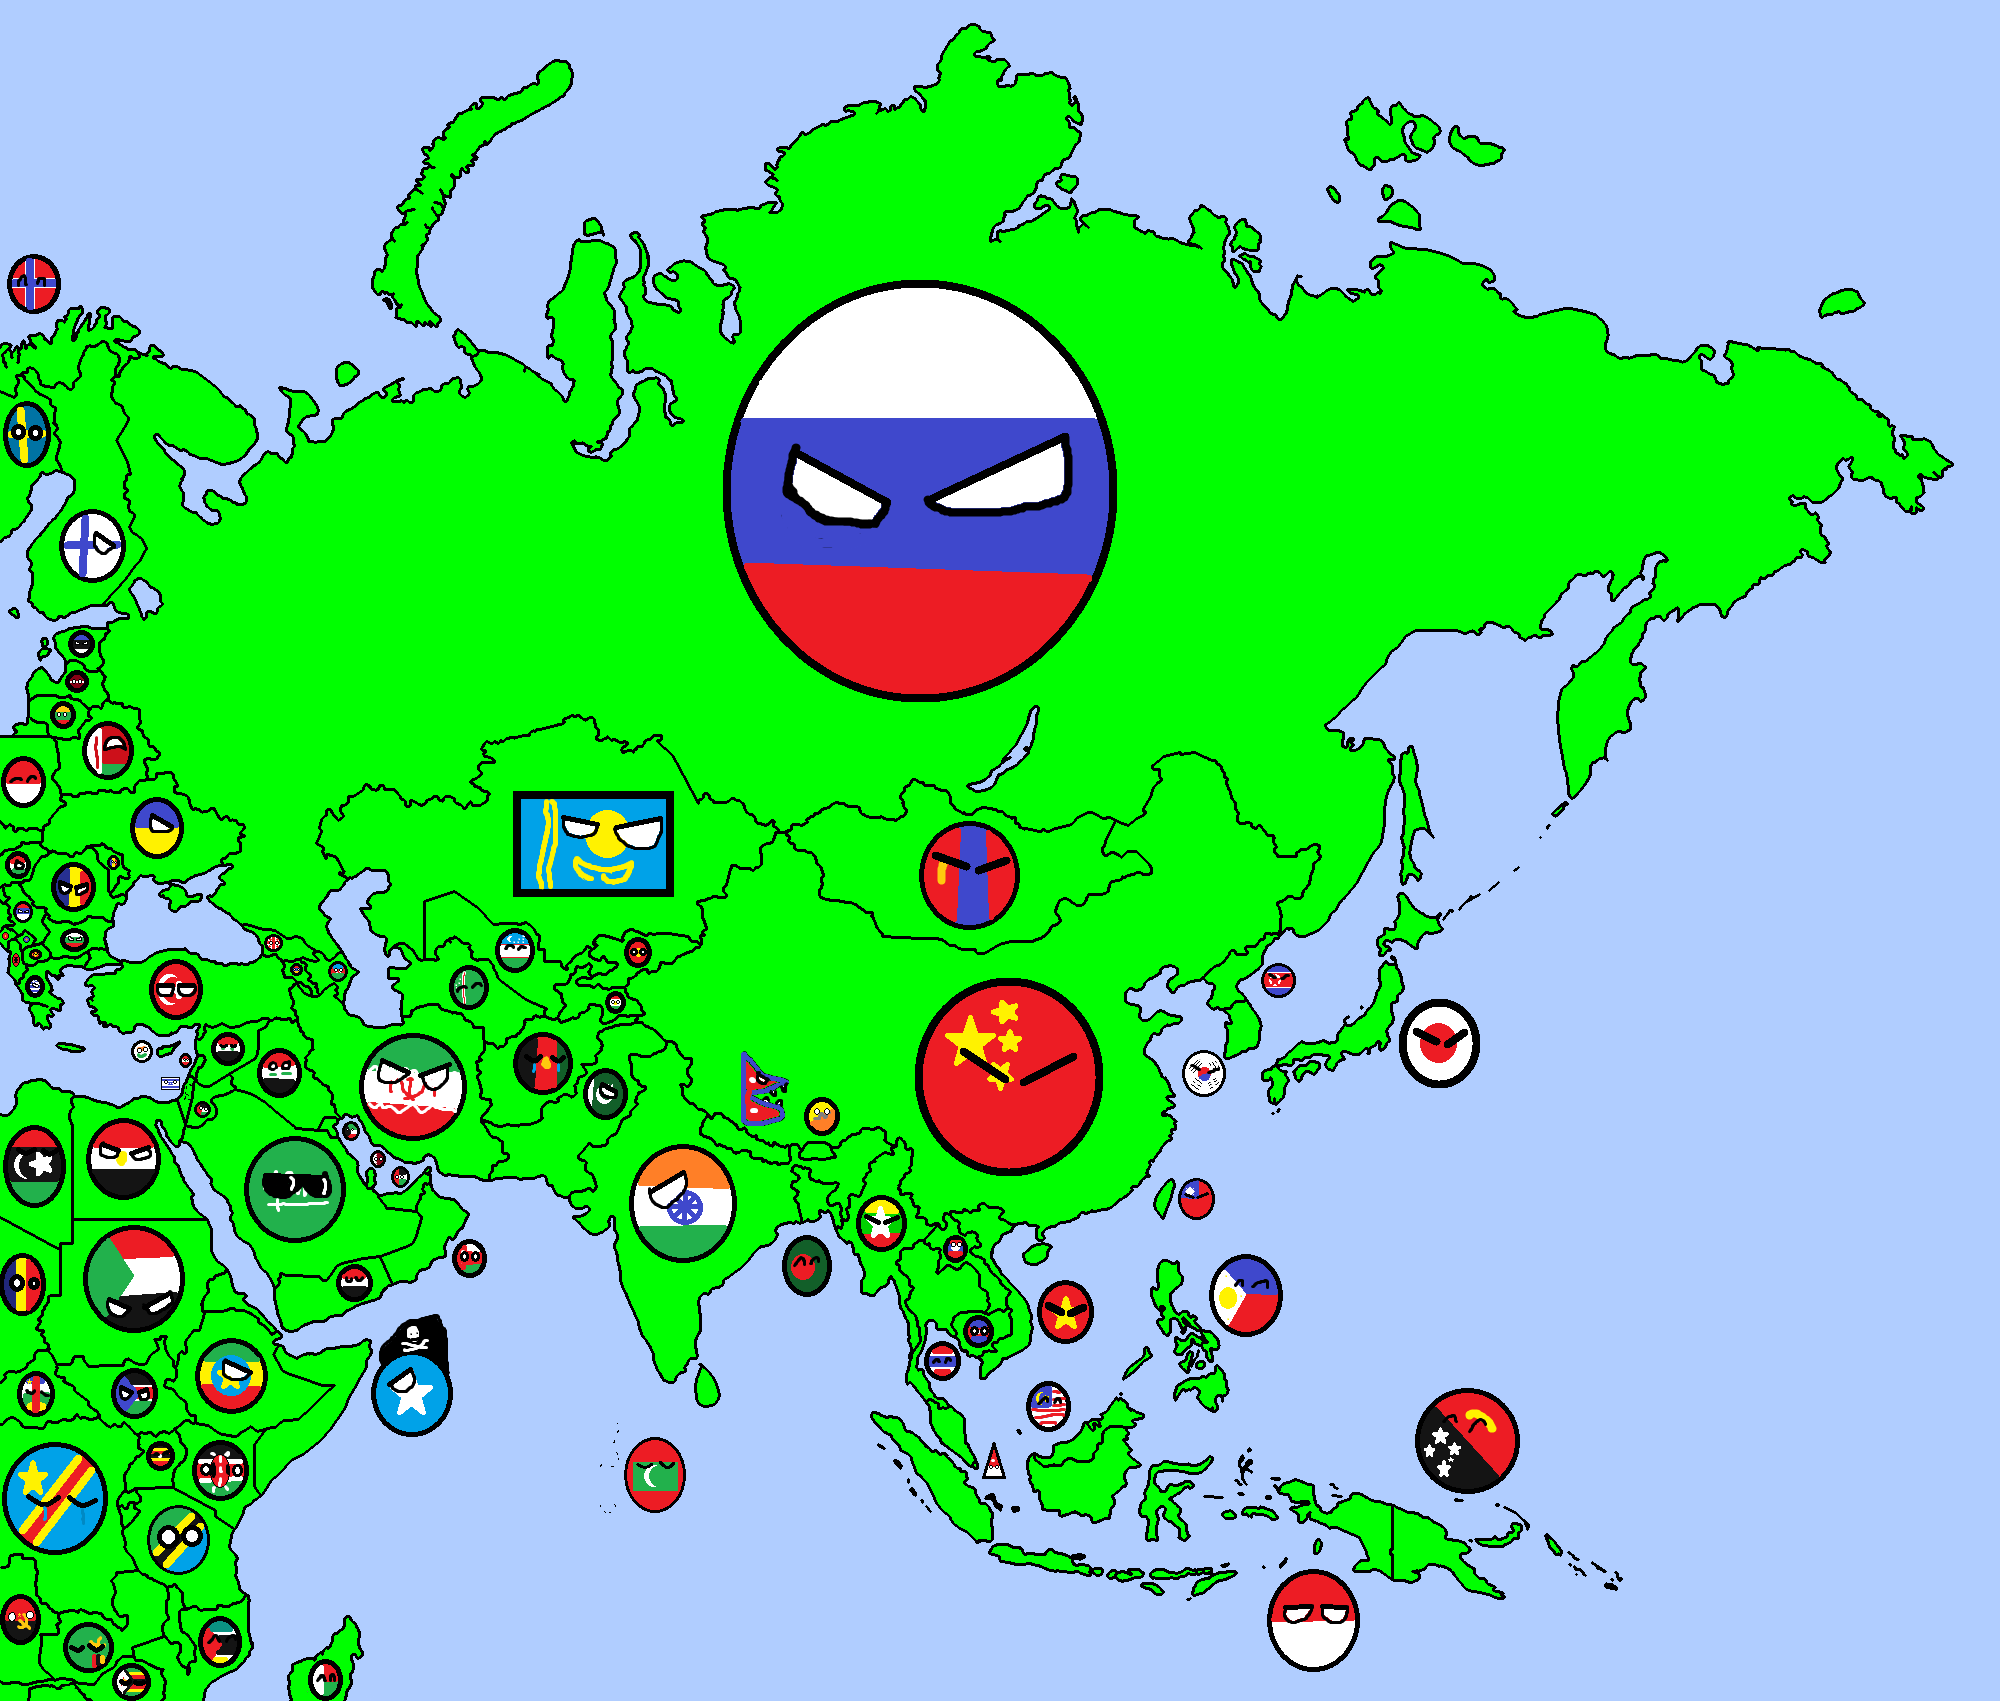 Image Map of Asia in Countryballspng – Full Map of Asia